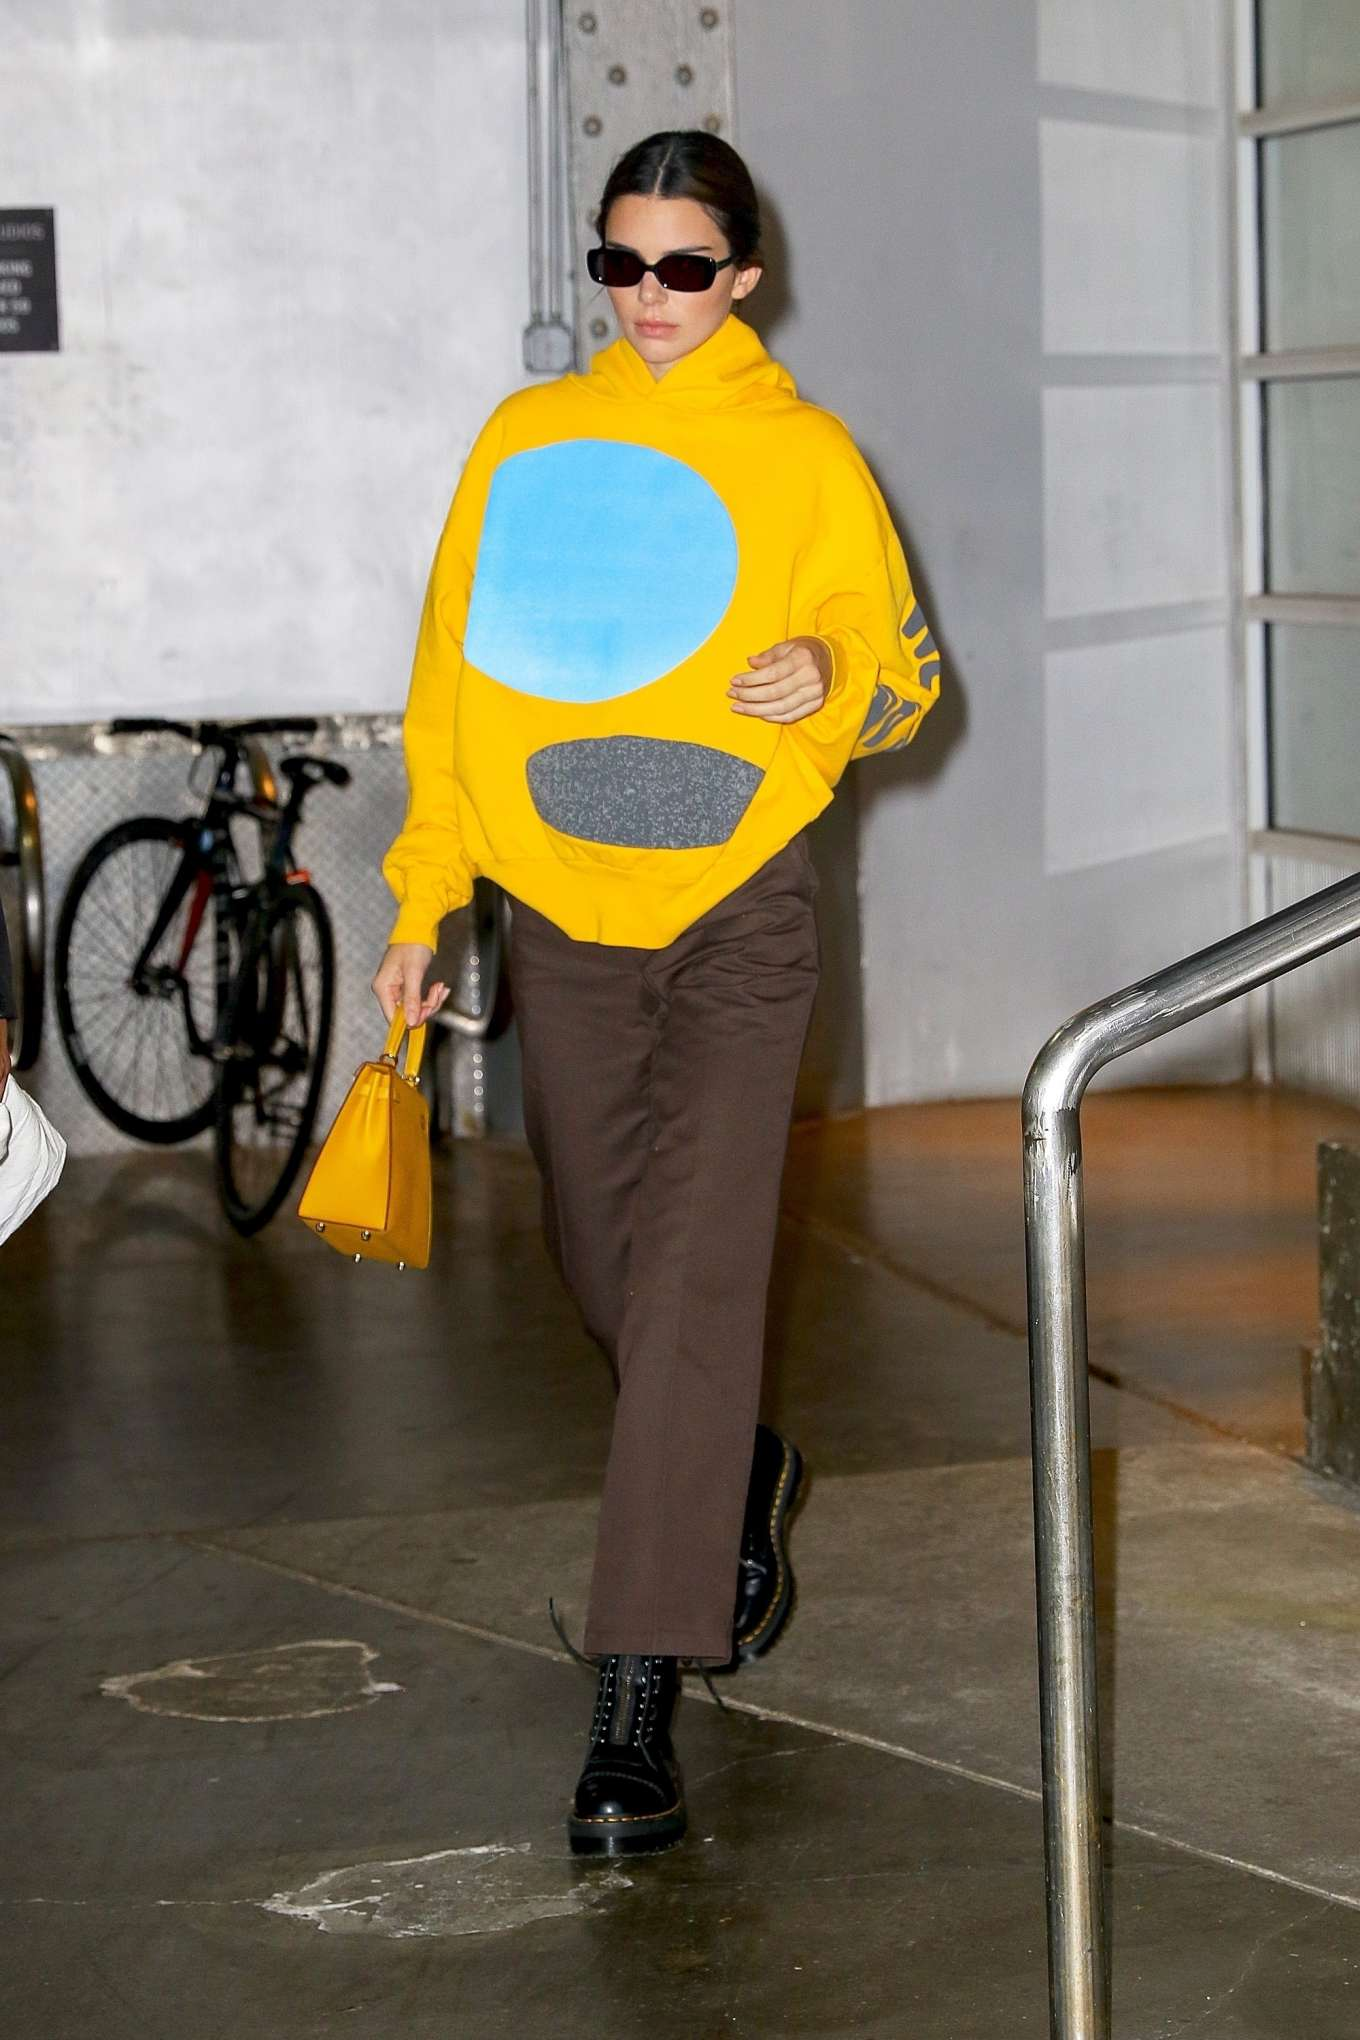 Kendall Jenner donning a Oversized Bright yellow hooded sweatshirt with full sleeves and a high neck